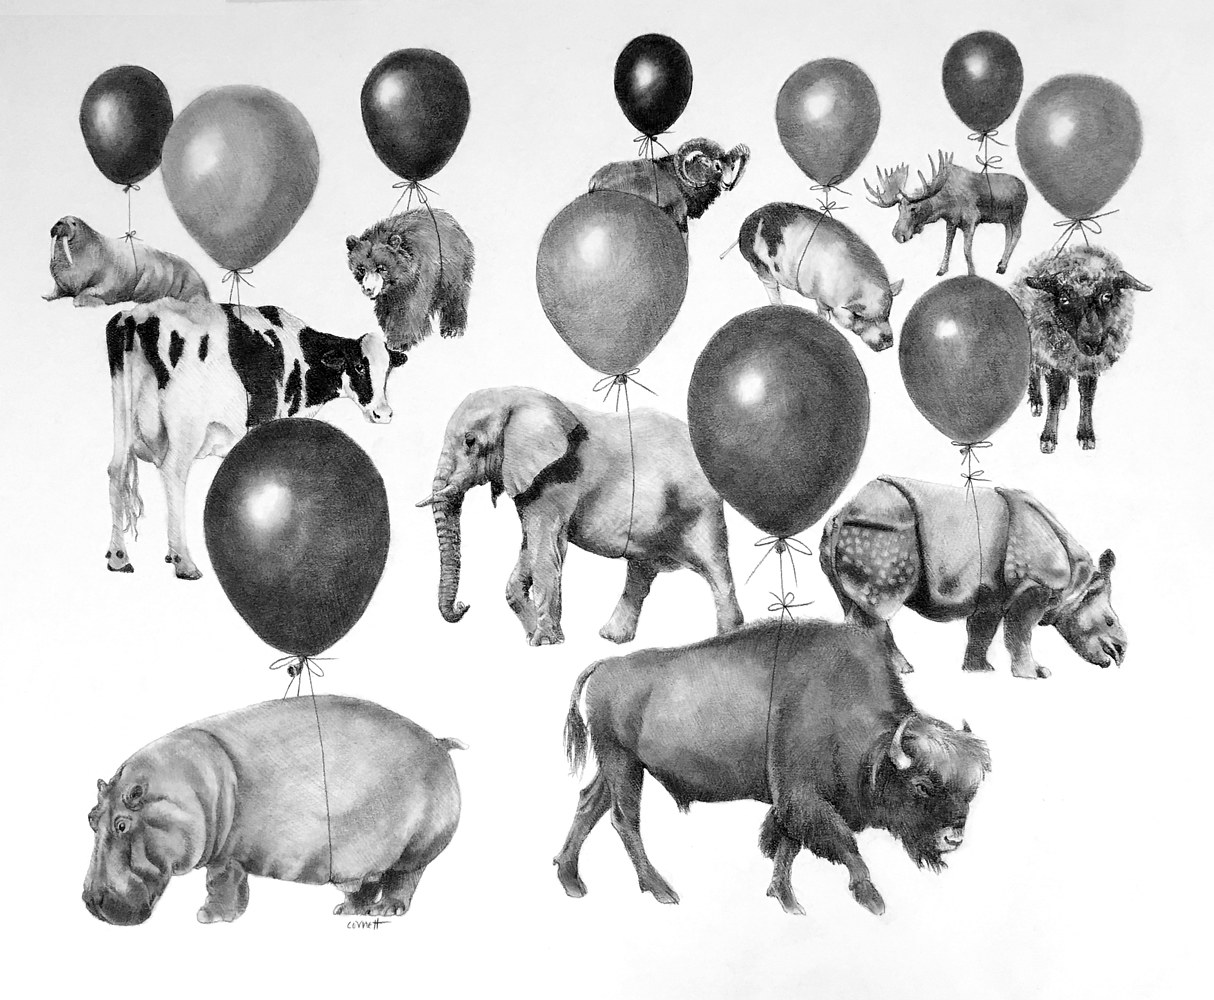 Drawing Balloon Festival by Ellen Cornett